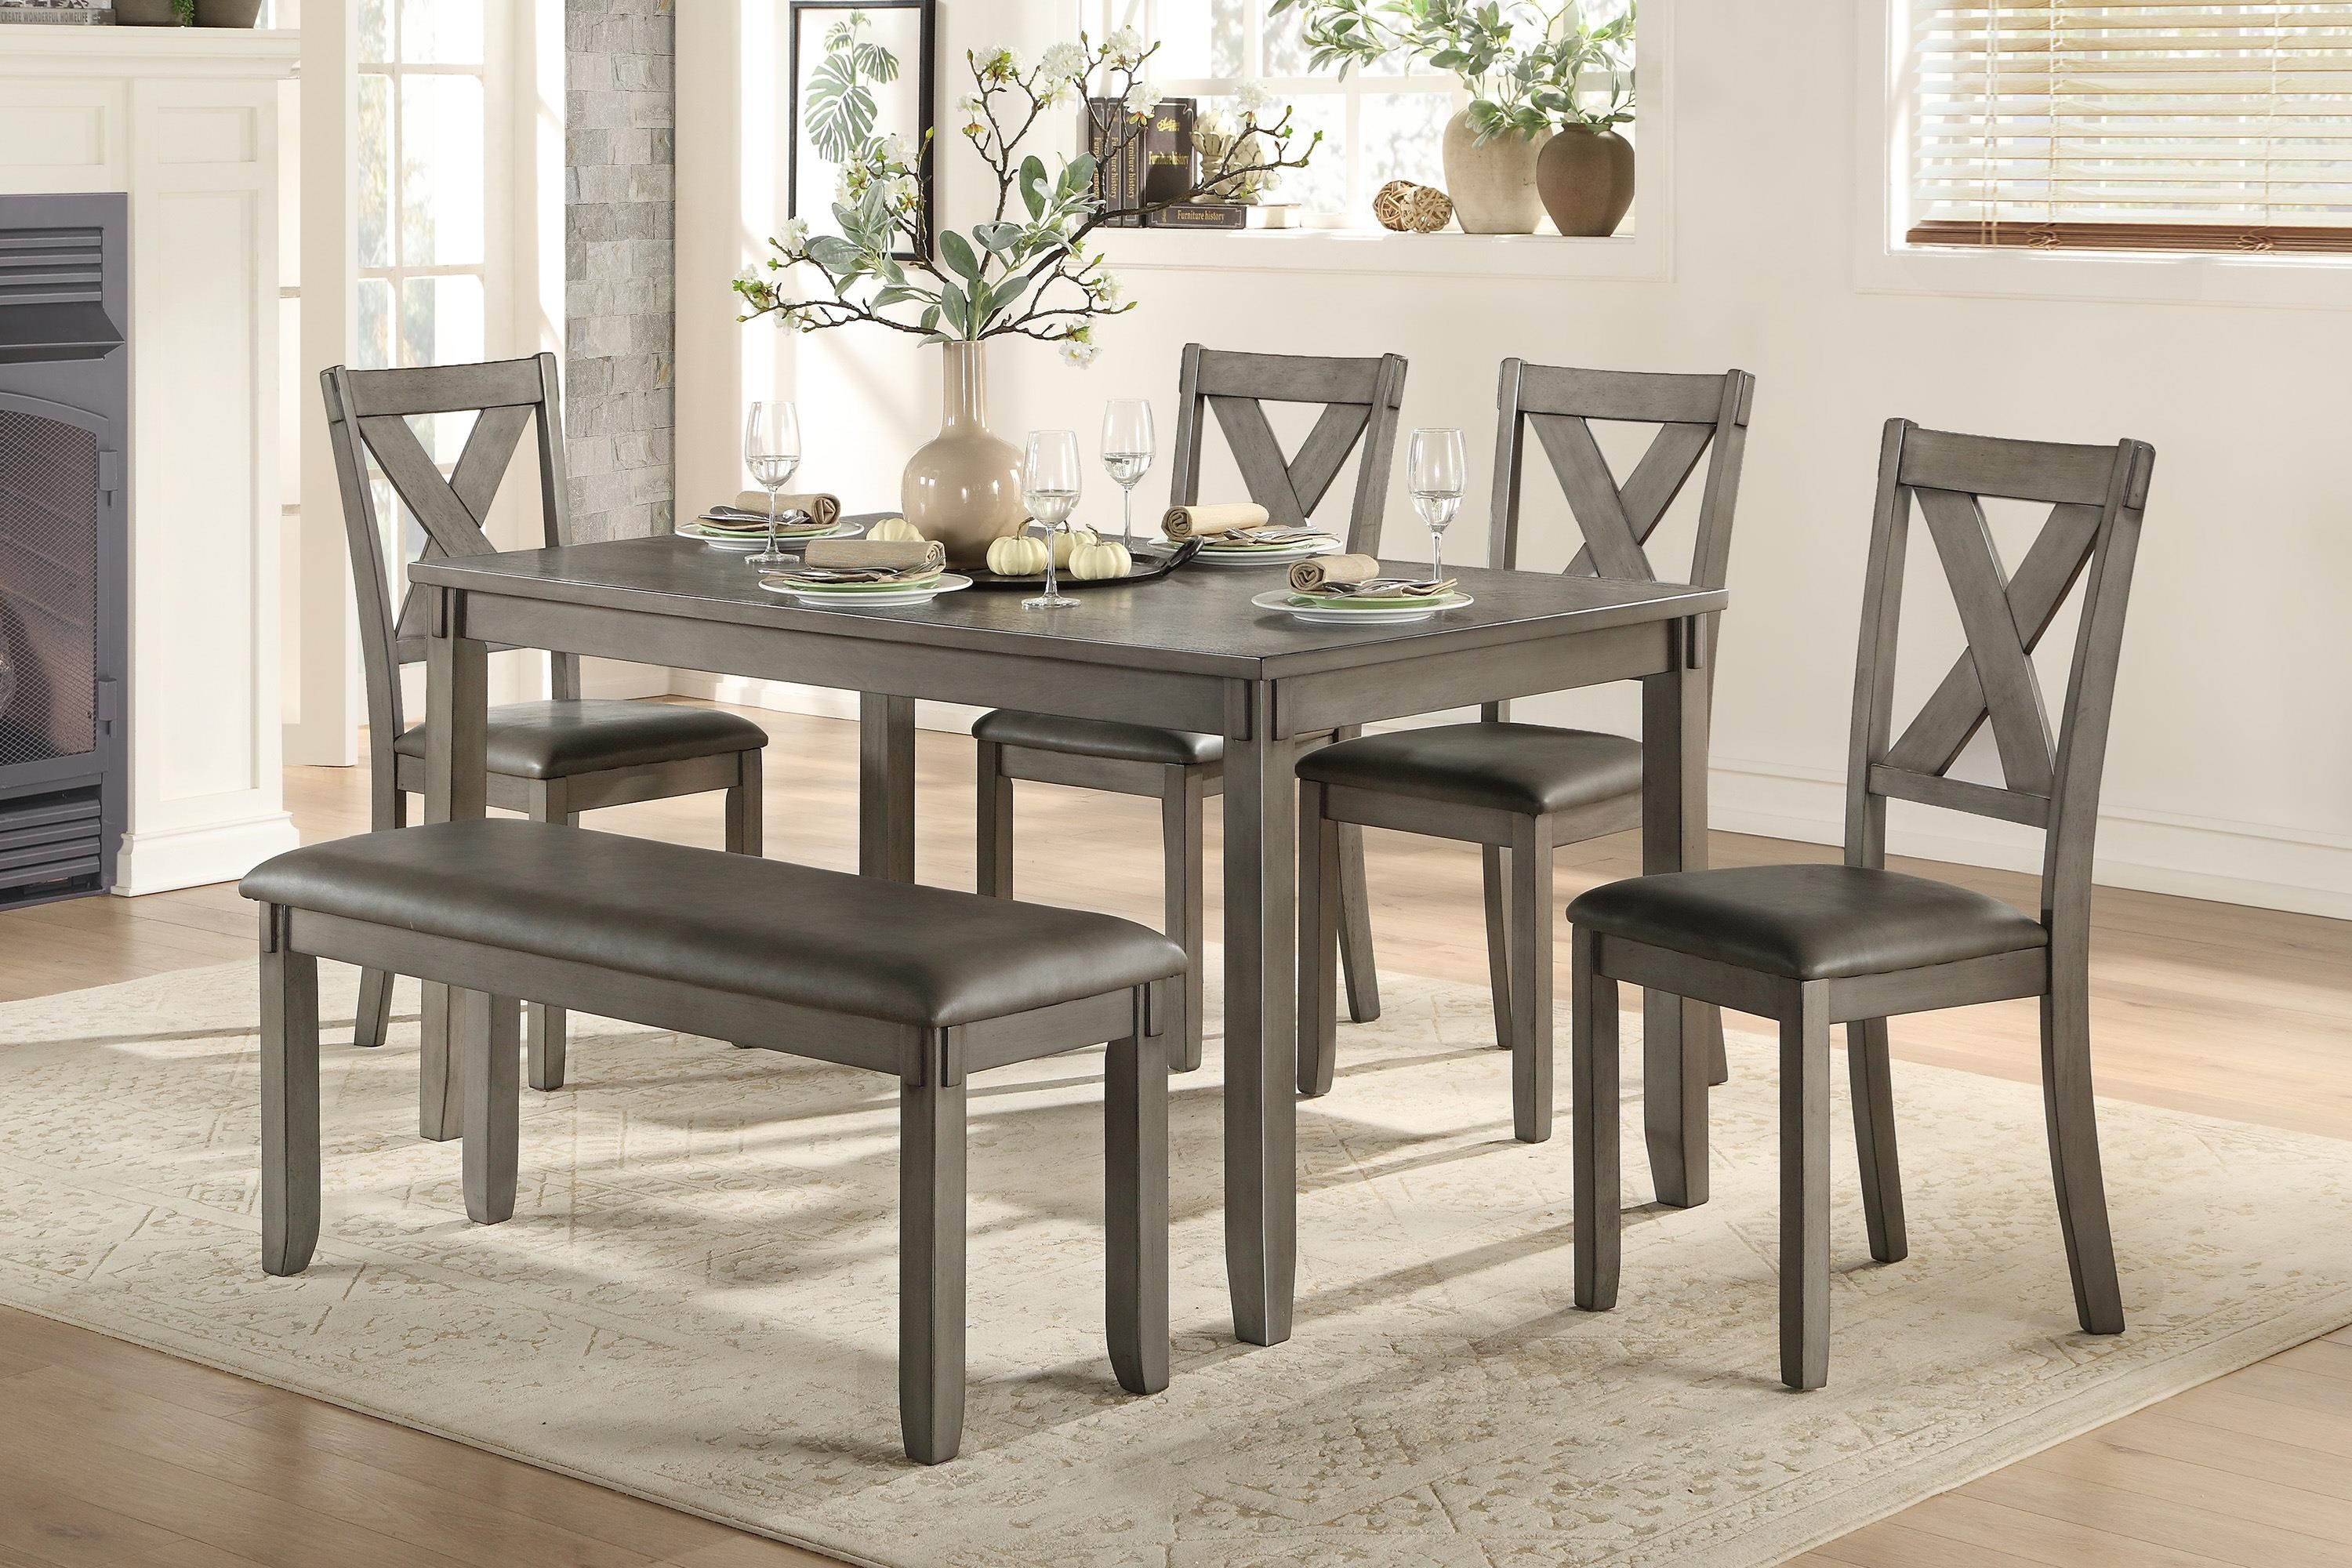 Holders 6-PIECE DINING AND CHAIR SET W/ BENCH by Homelegance at Beck's Furniture